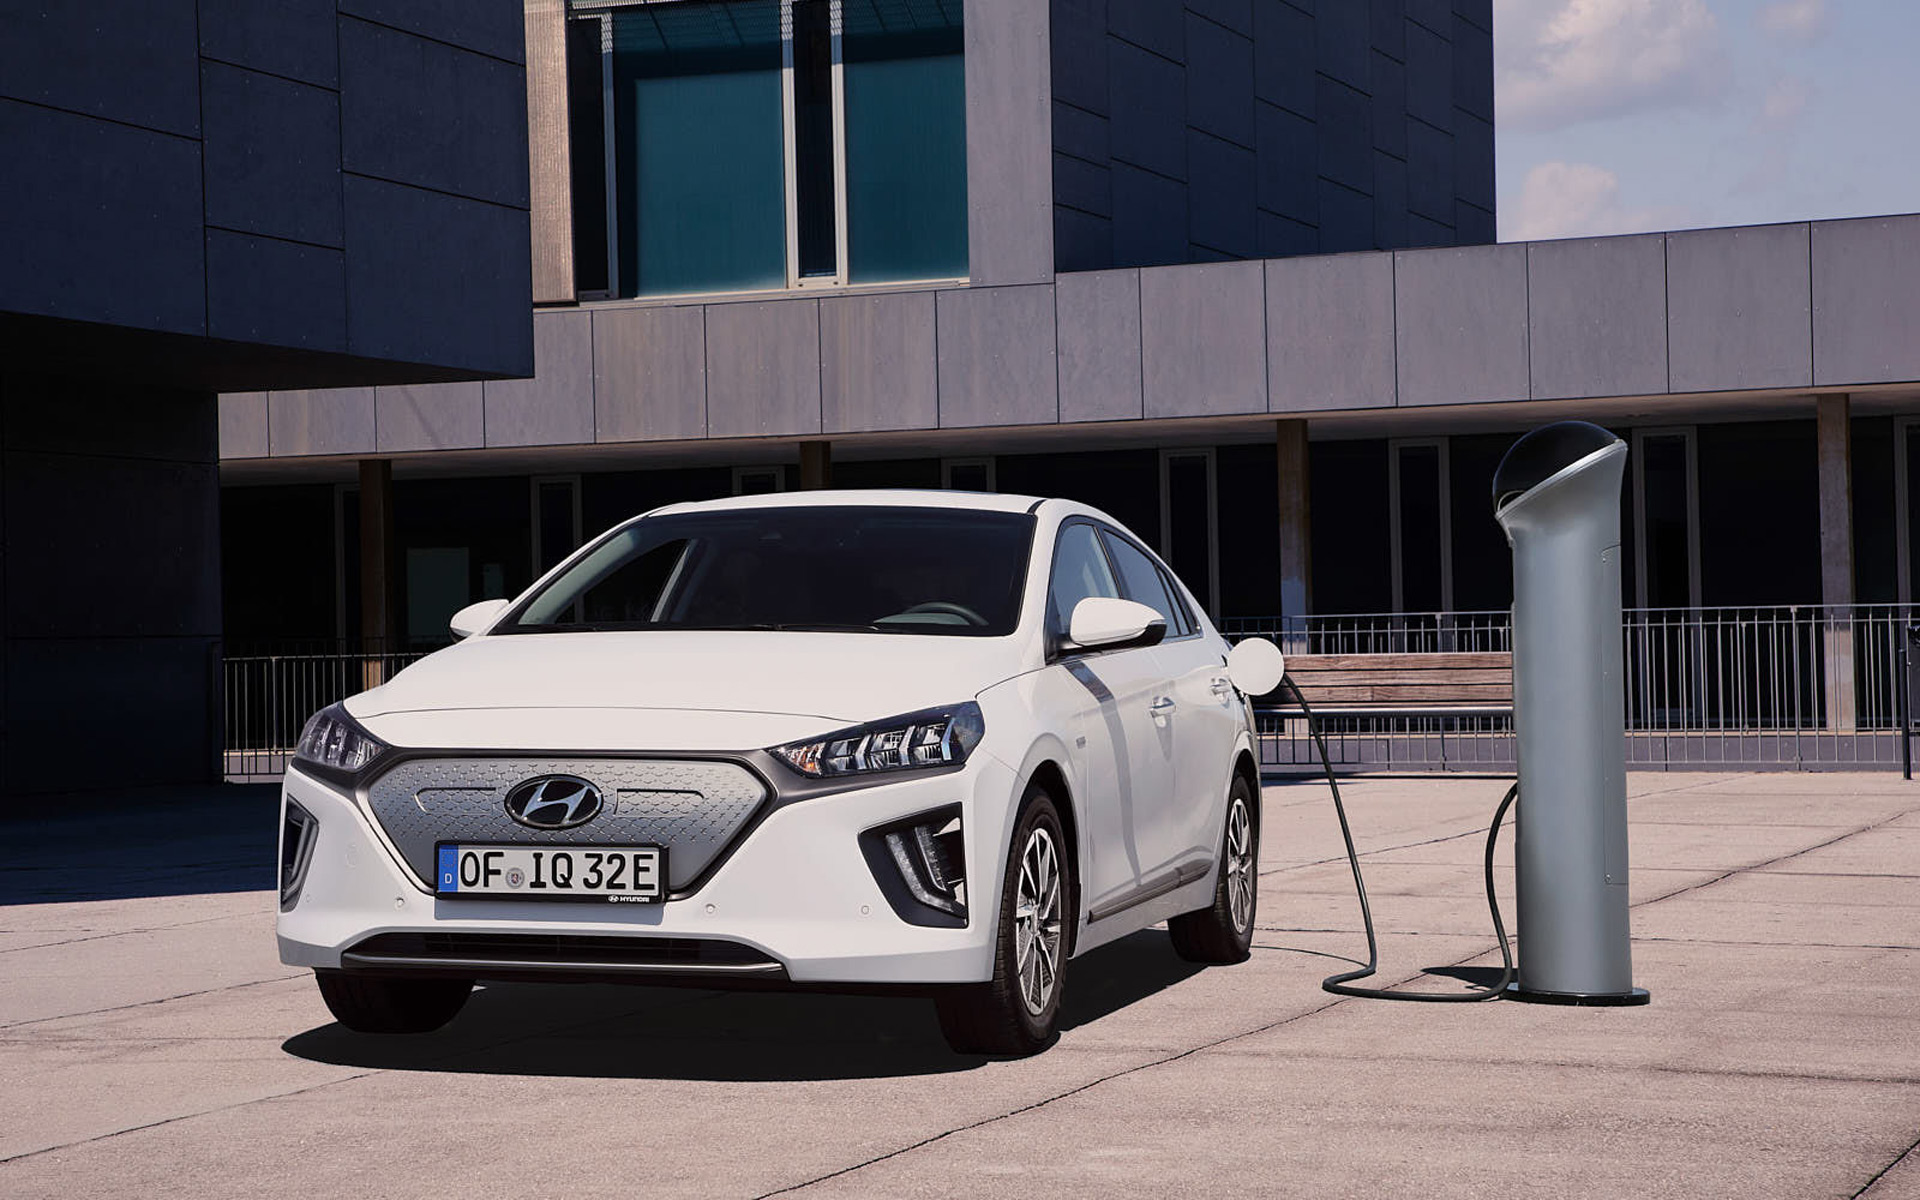 Hyundai Upgrades Ioniq Electric Car With More Range Electrive Com